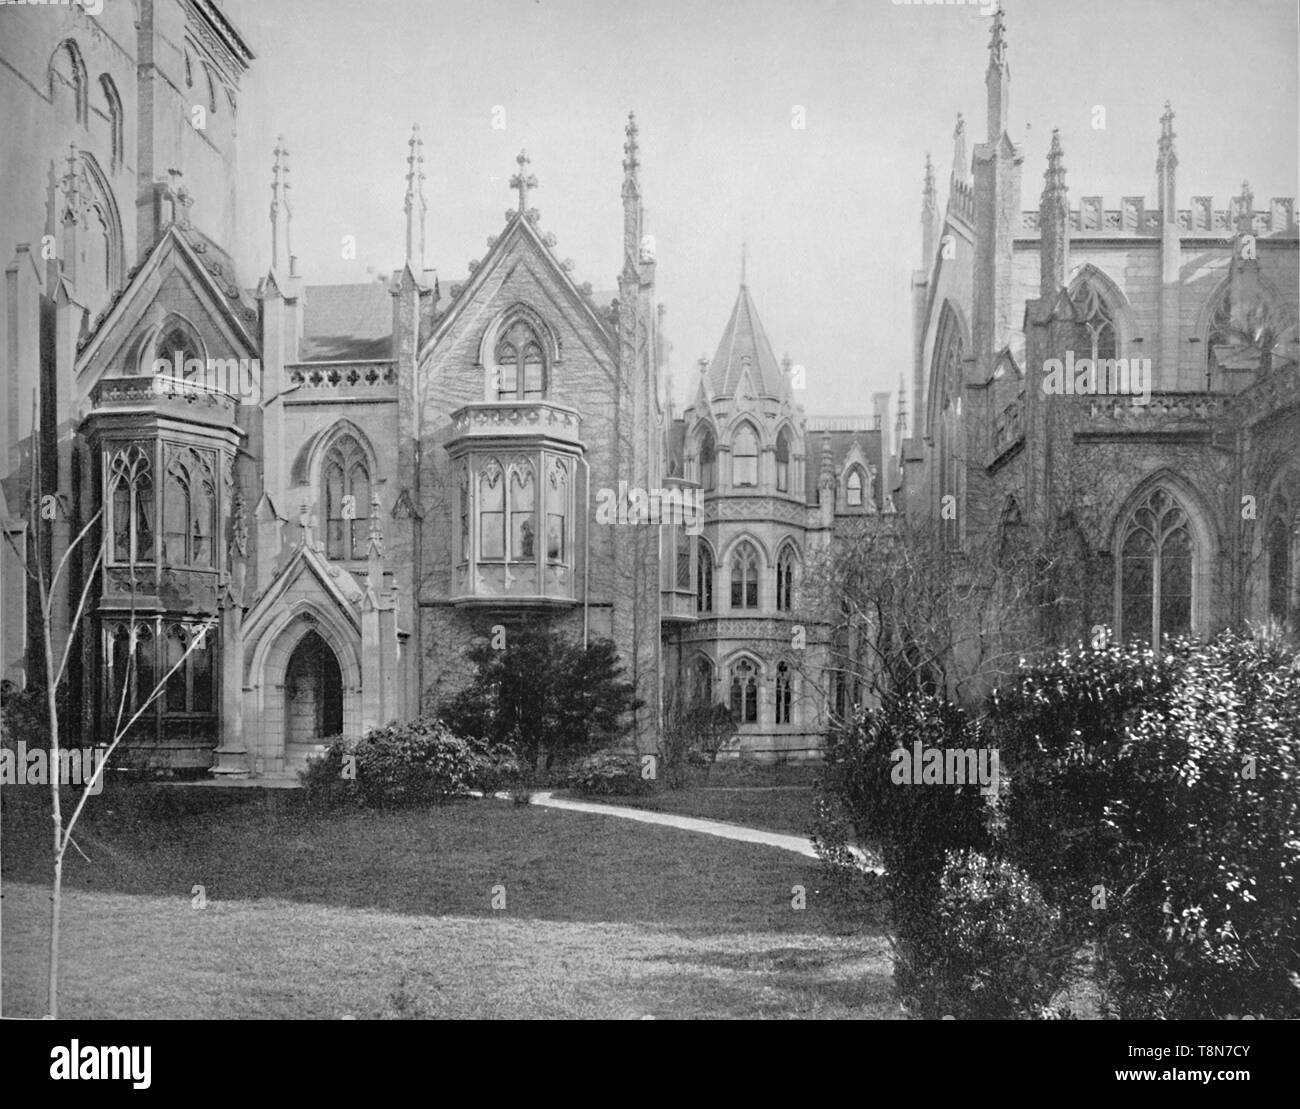 """'Grace Church and Rectory, New York', c1897. French Gothic Revival parich church on Broadway in Manhattan designed by James Renwick. From """"A Tour Through the New World America"""", by Prof. Geo. R. Cromwell. [C. N. Greig & Co., London, c1897] - Stock Image"""